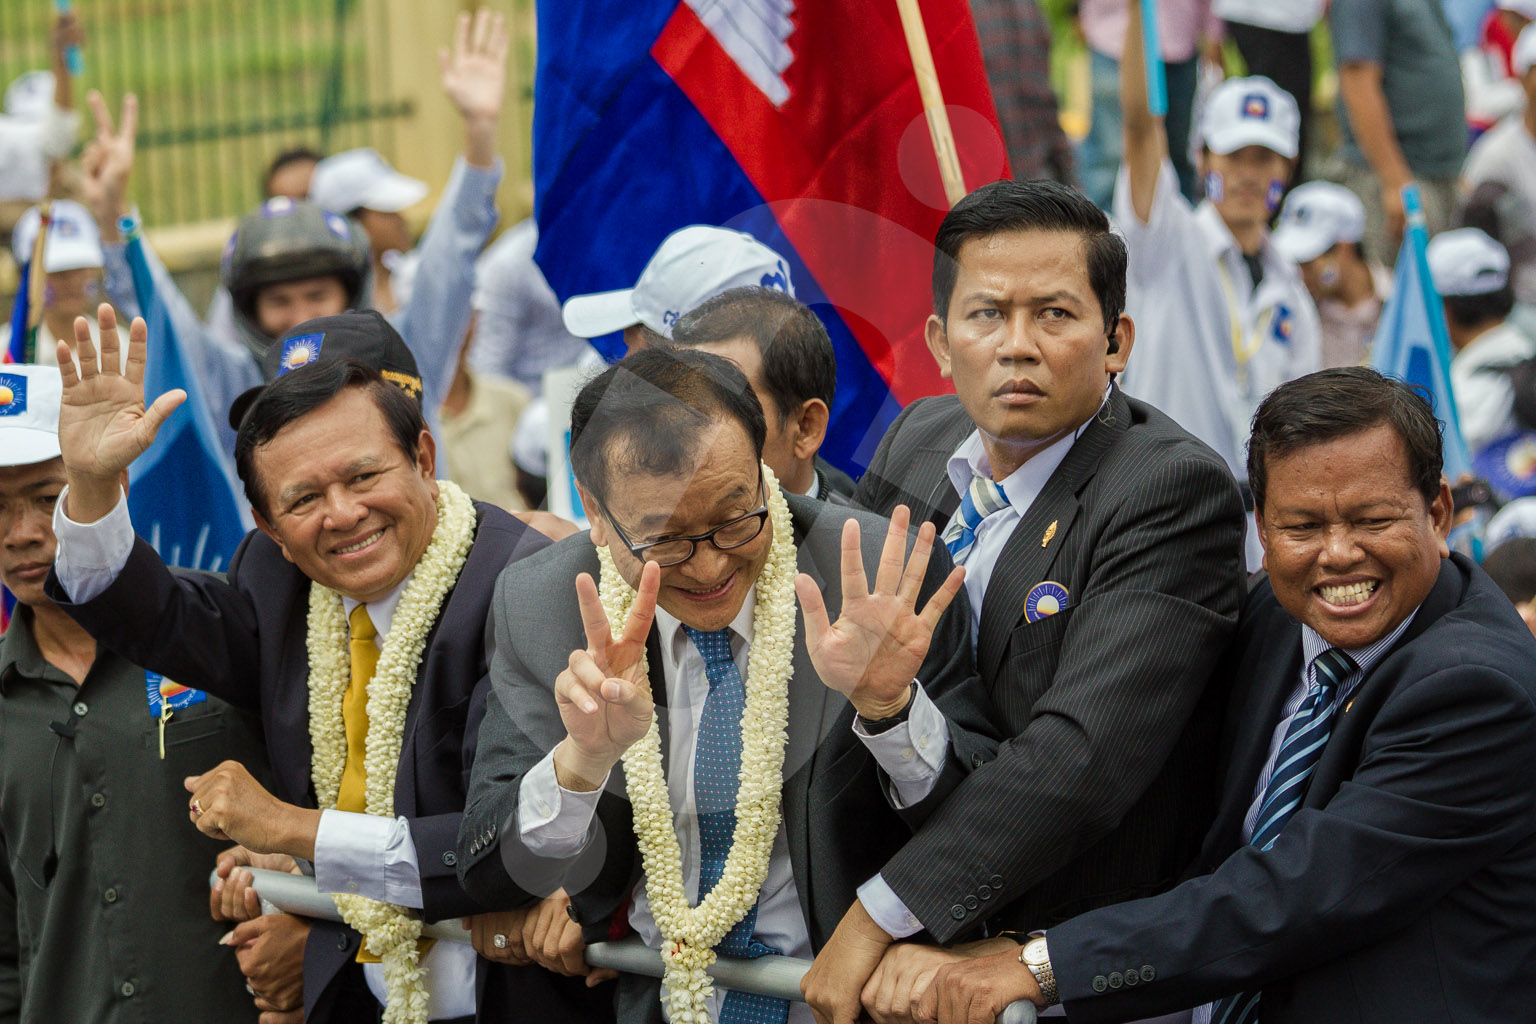 Sam Rainsy and Kem Sokha cheer the thousands of supporters of the CNRP party, who filled the street of Phnom Penh.